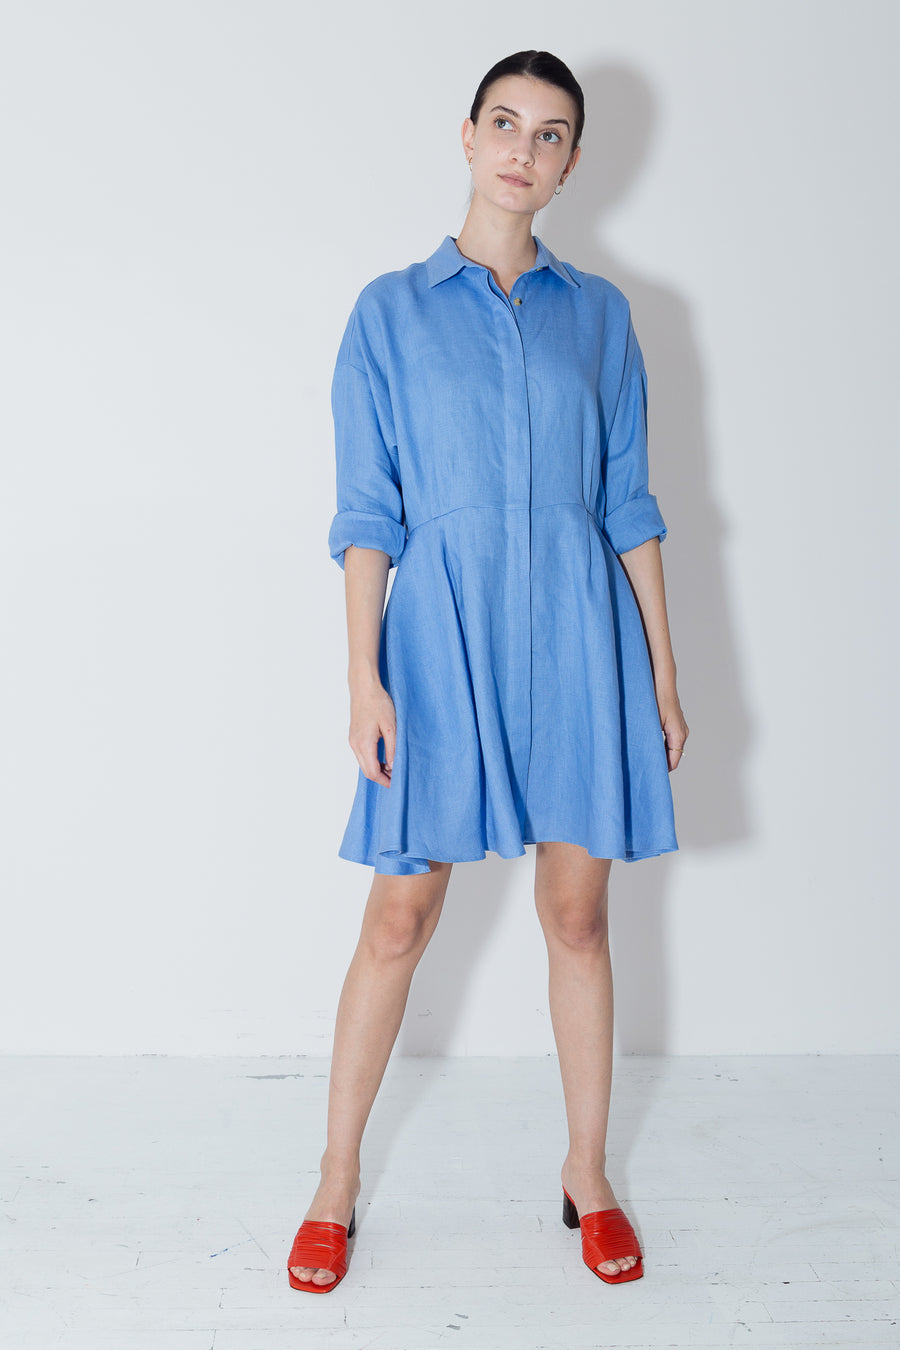 Empyrean Linen Short Shirt Dress